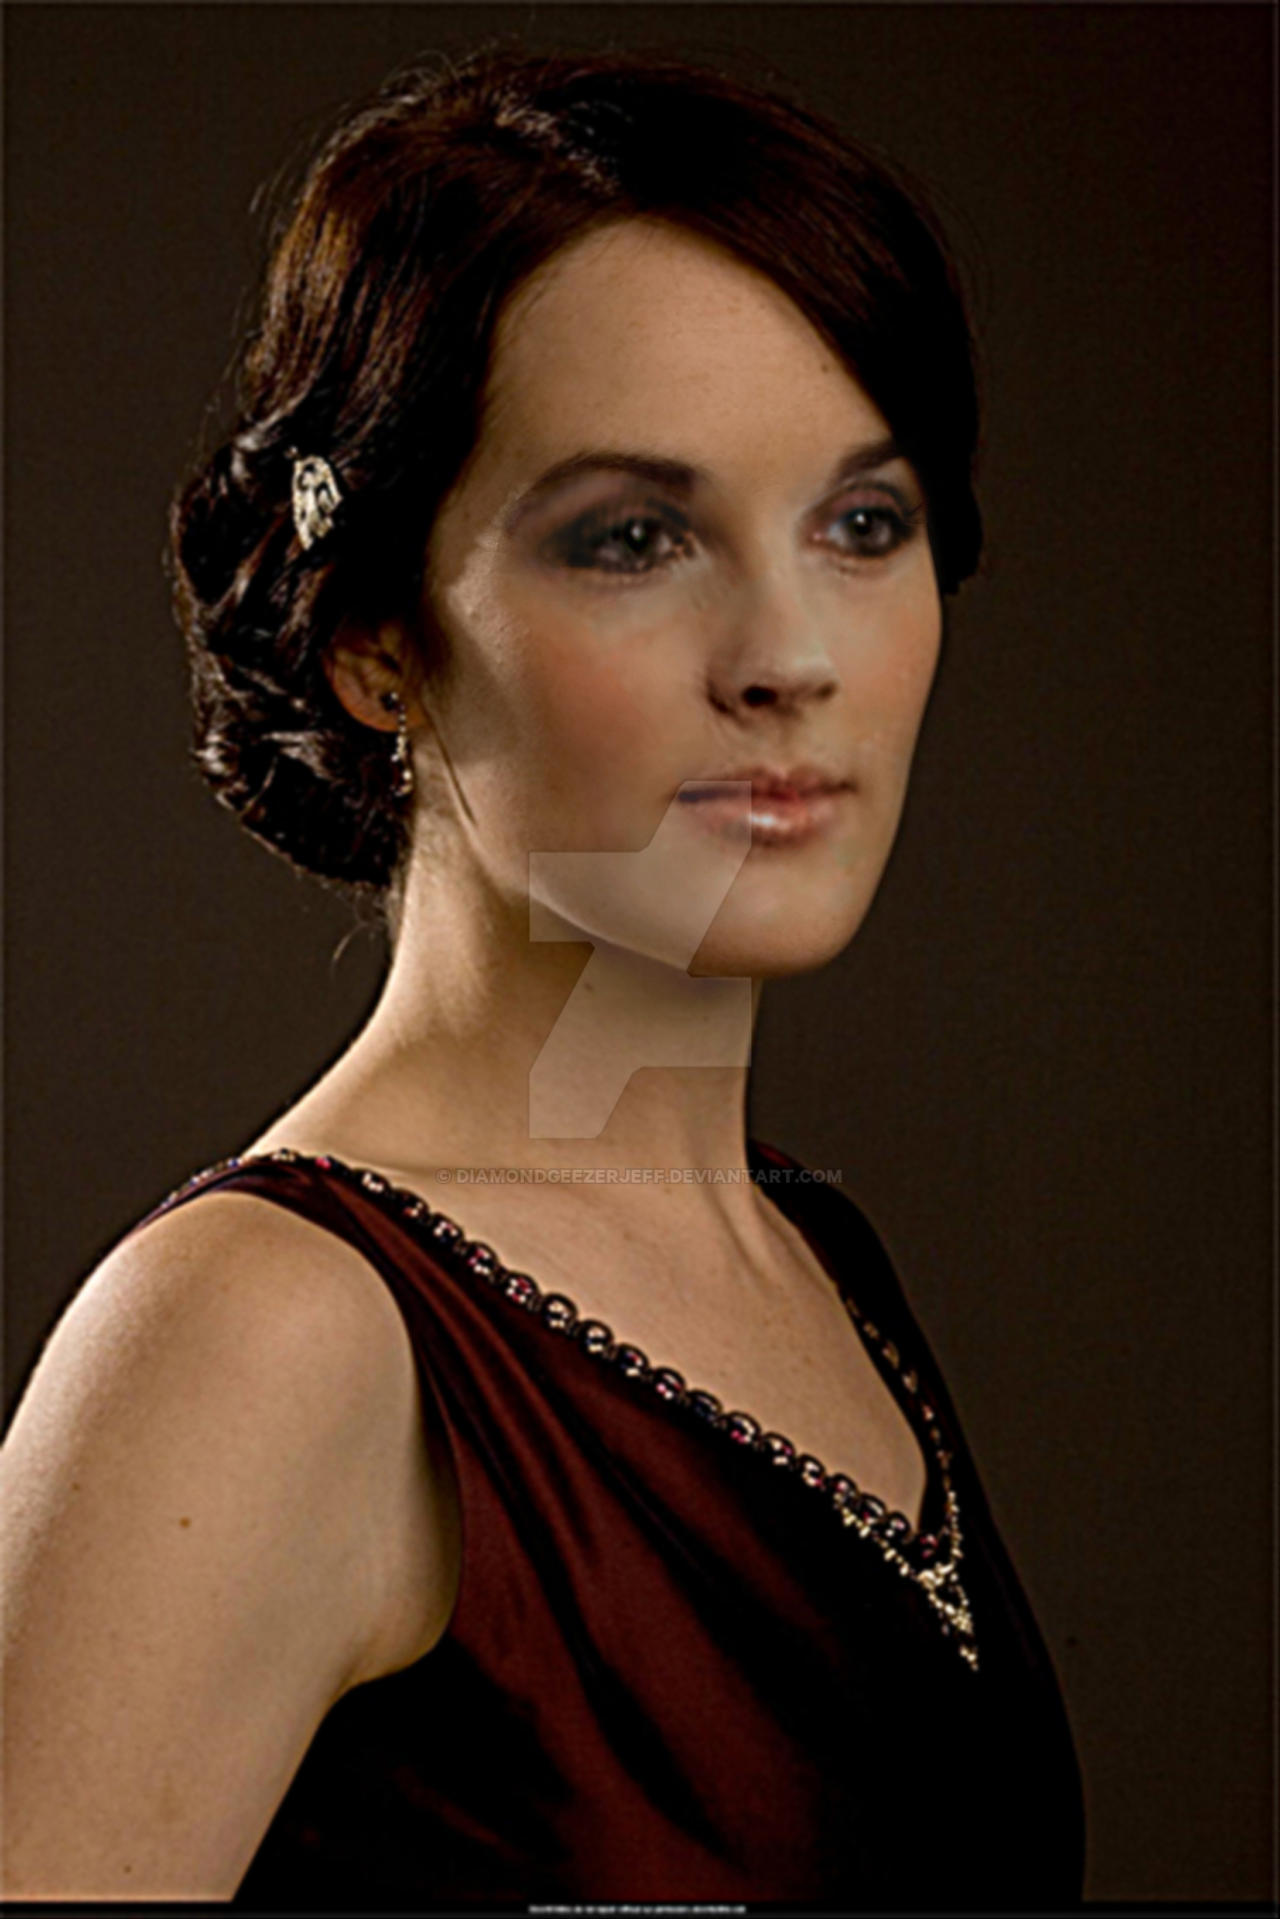 Downton Abbey Lady Mary Crawley Style Diamondgeezerjeff